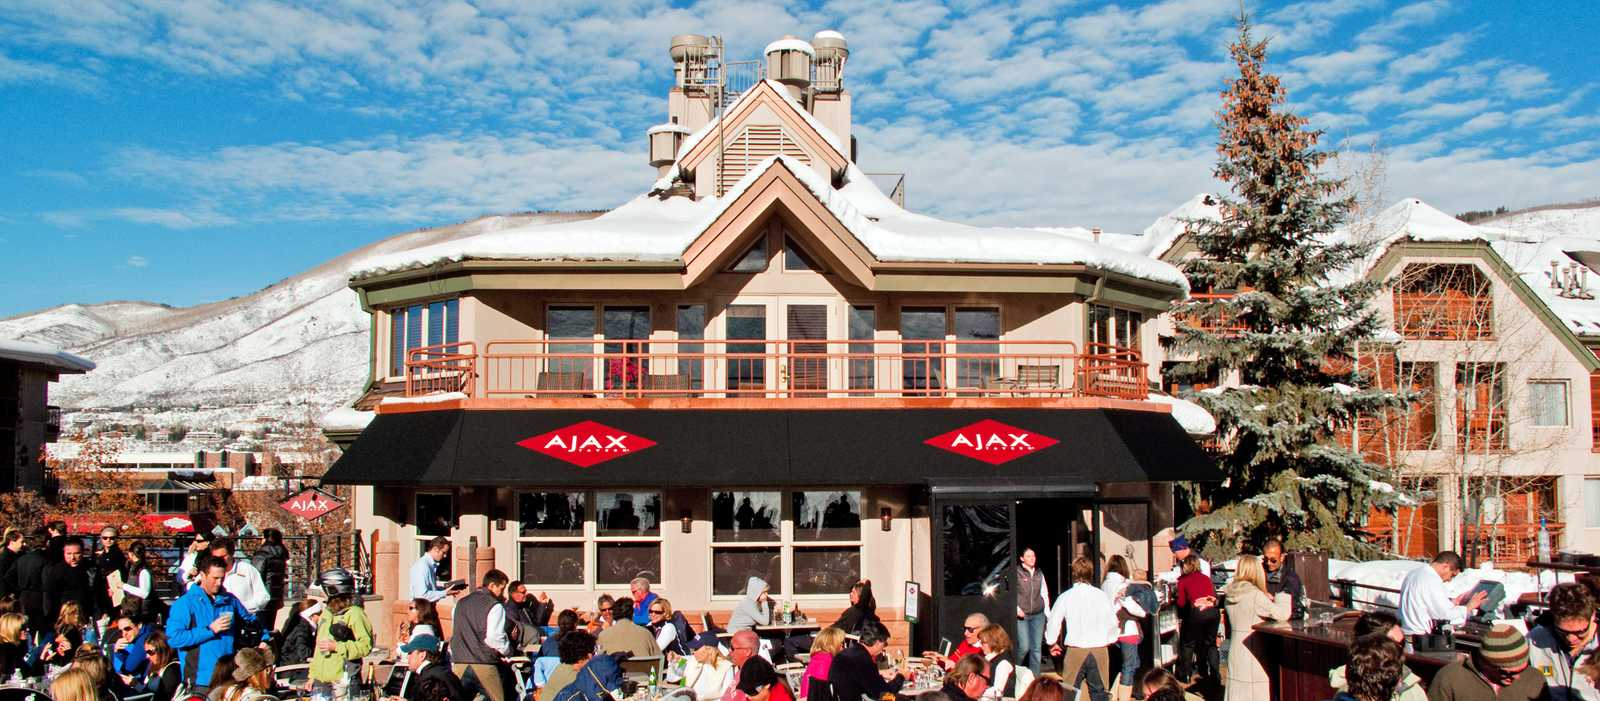 Ajax Tavern in Aspen